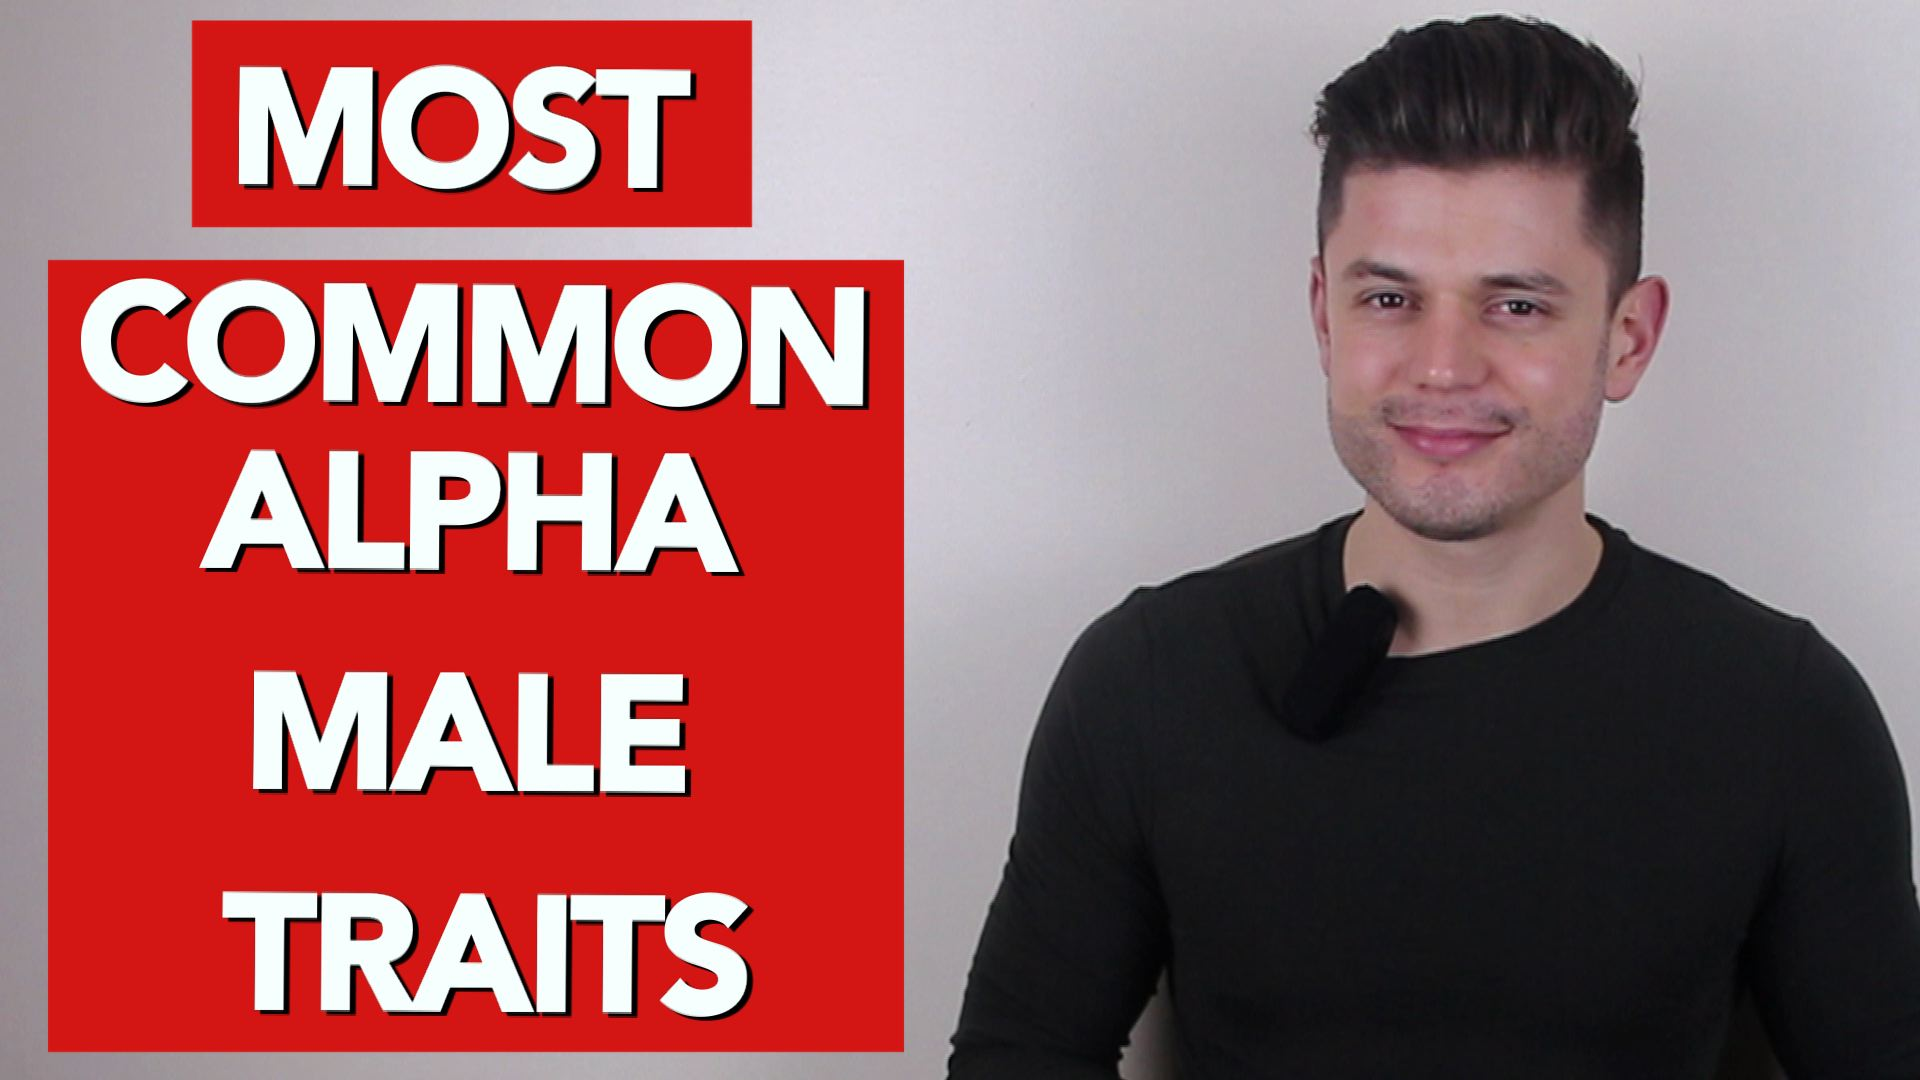 dating alpha male personality This article should give you a good idea of the most common beta male traits and characteristics traits and characteristics the alpha male personality men.